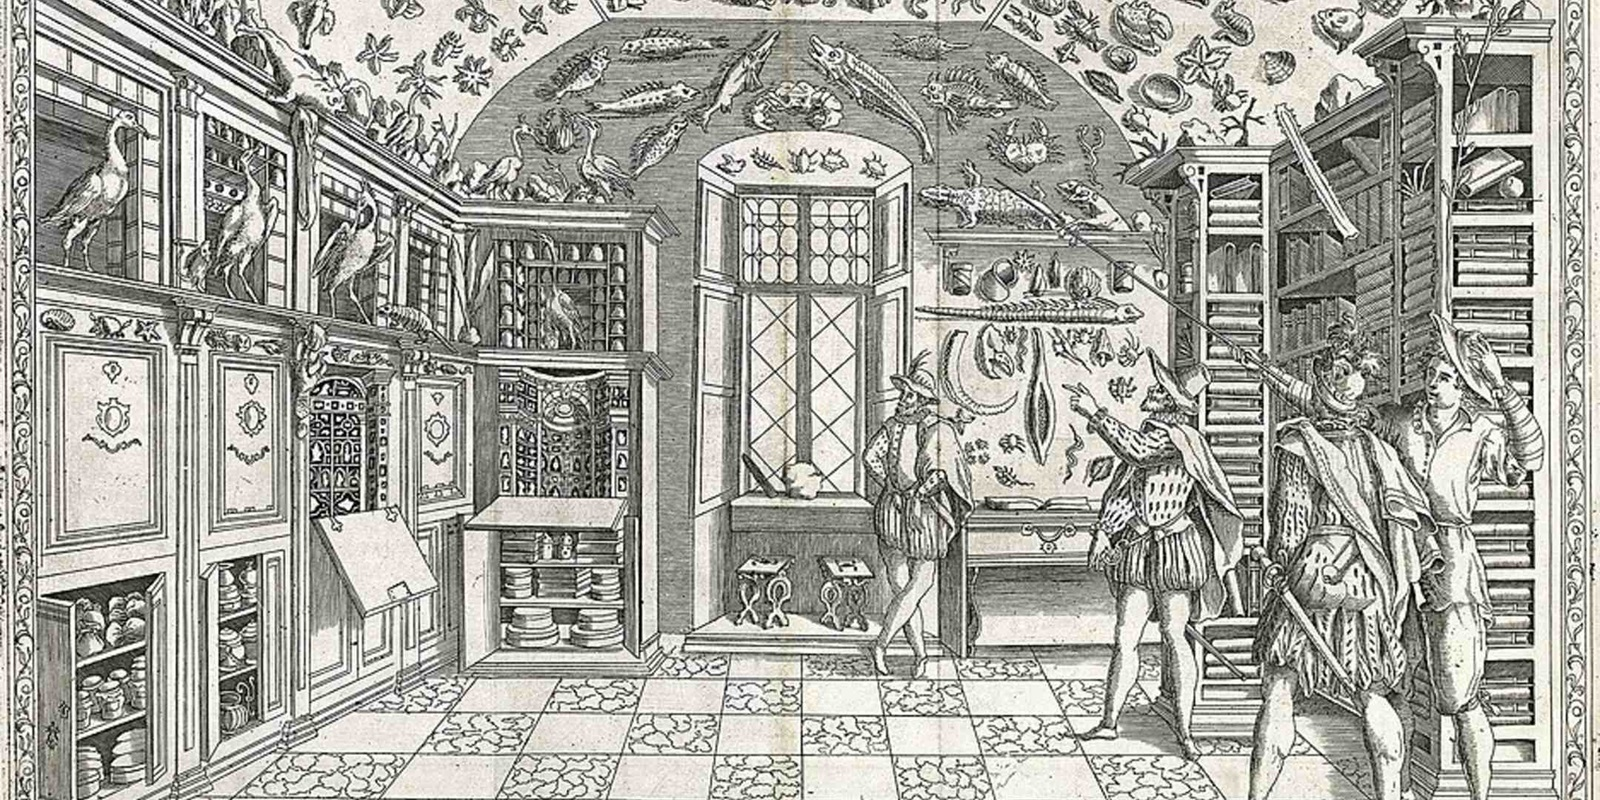 Fold-out engraving from Ferrante Imperato's Dell'Historia Naturale (Naples 1599), the earliest illustration of a natural history cabinet. Source: Wikimedia